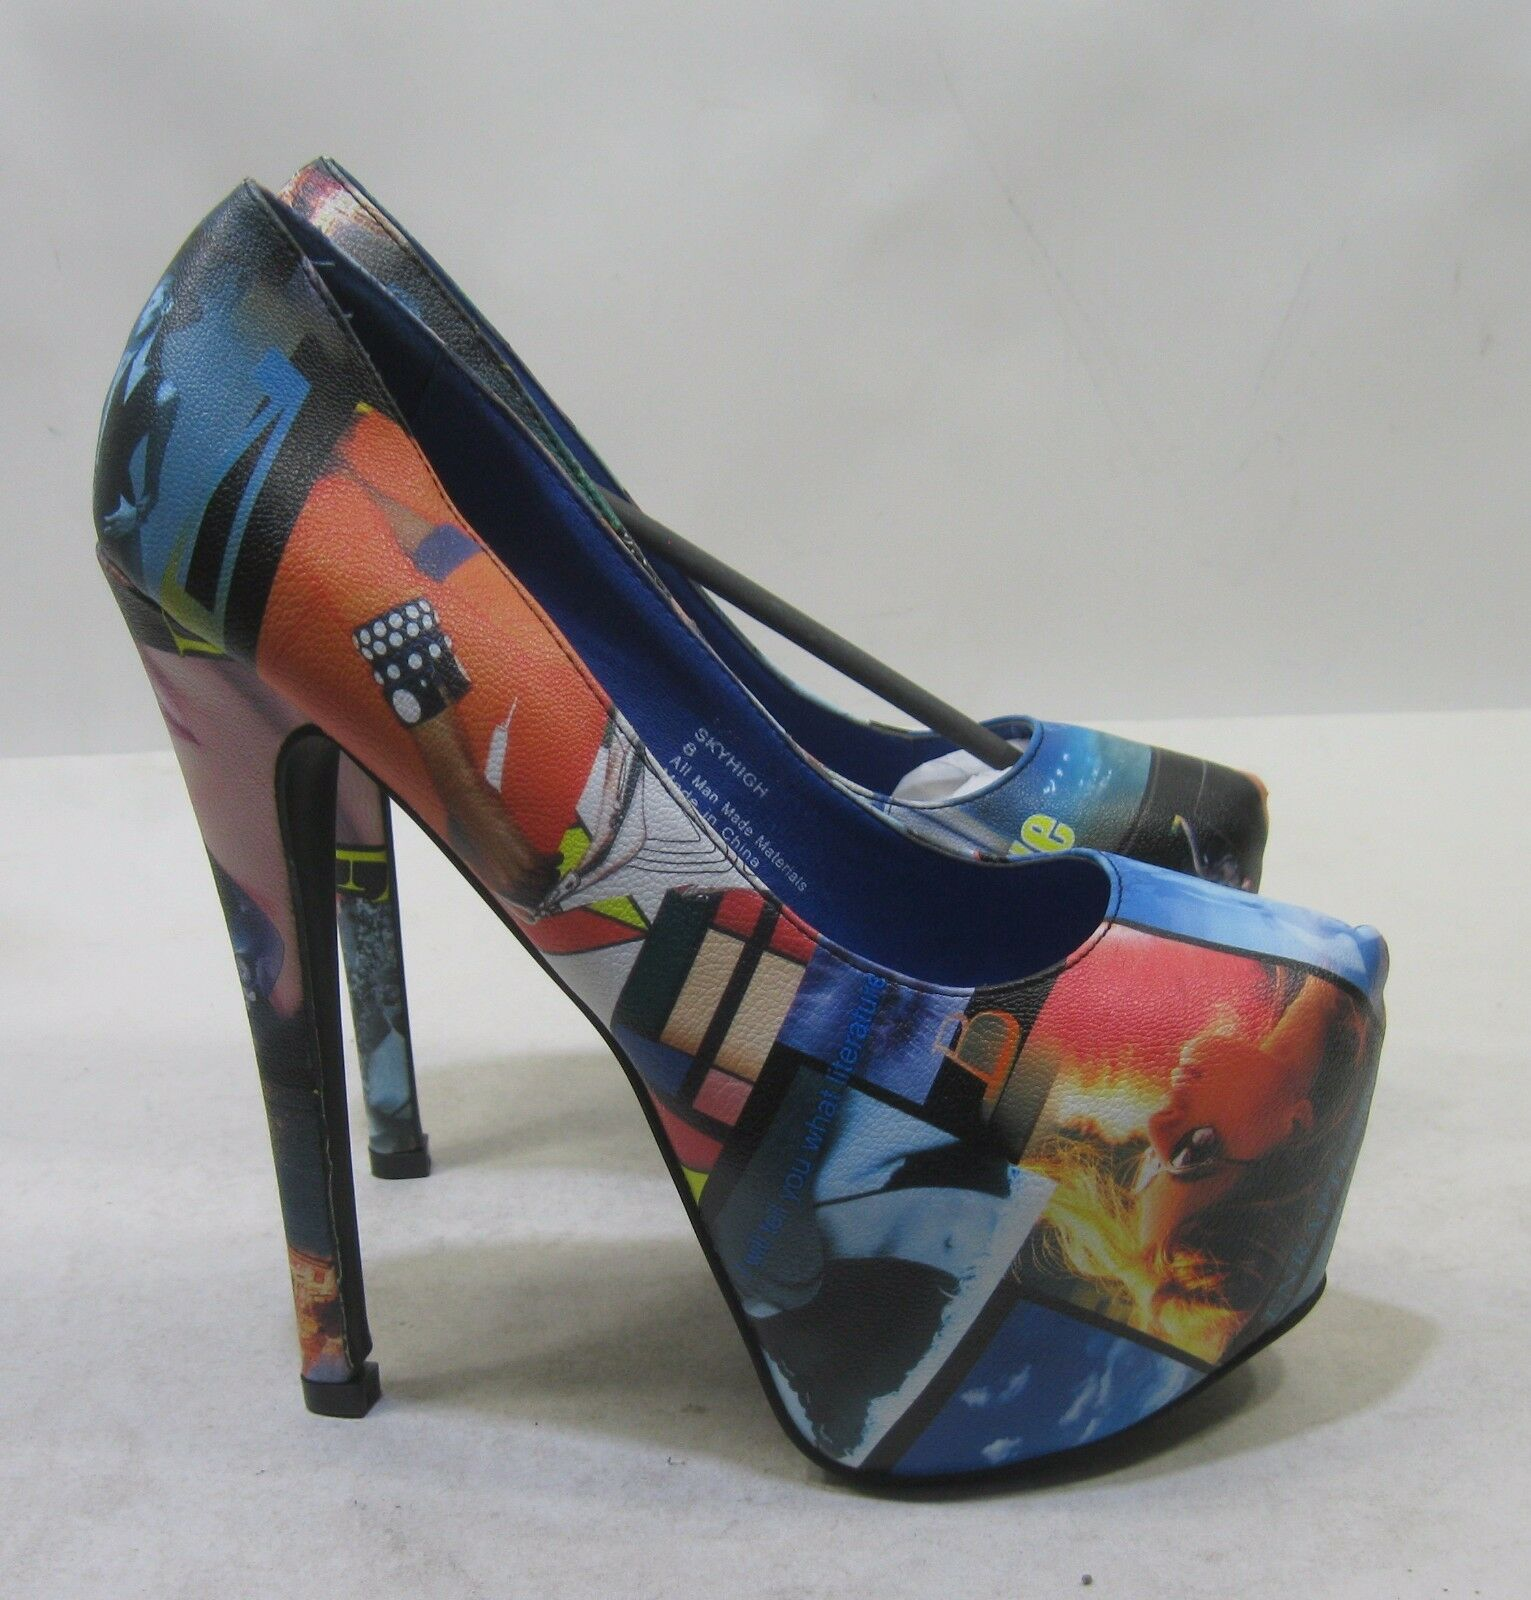 bluee Multi 6.5  Stiletto High Heel 2.5  Platform Womens Sexy shoes Size 8